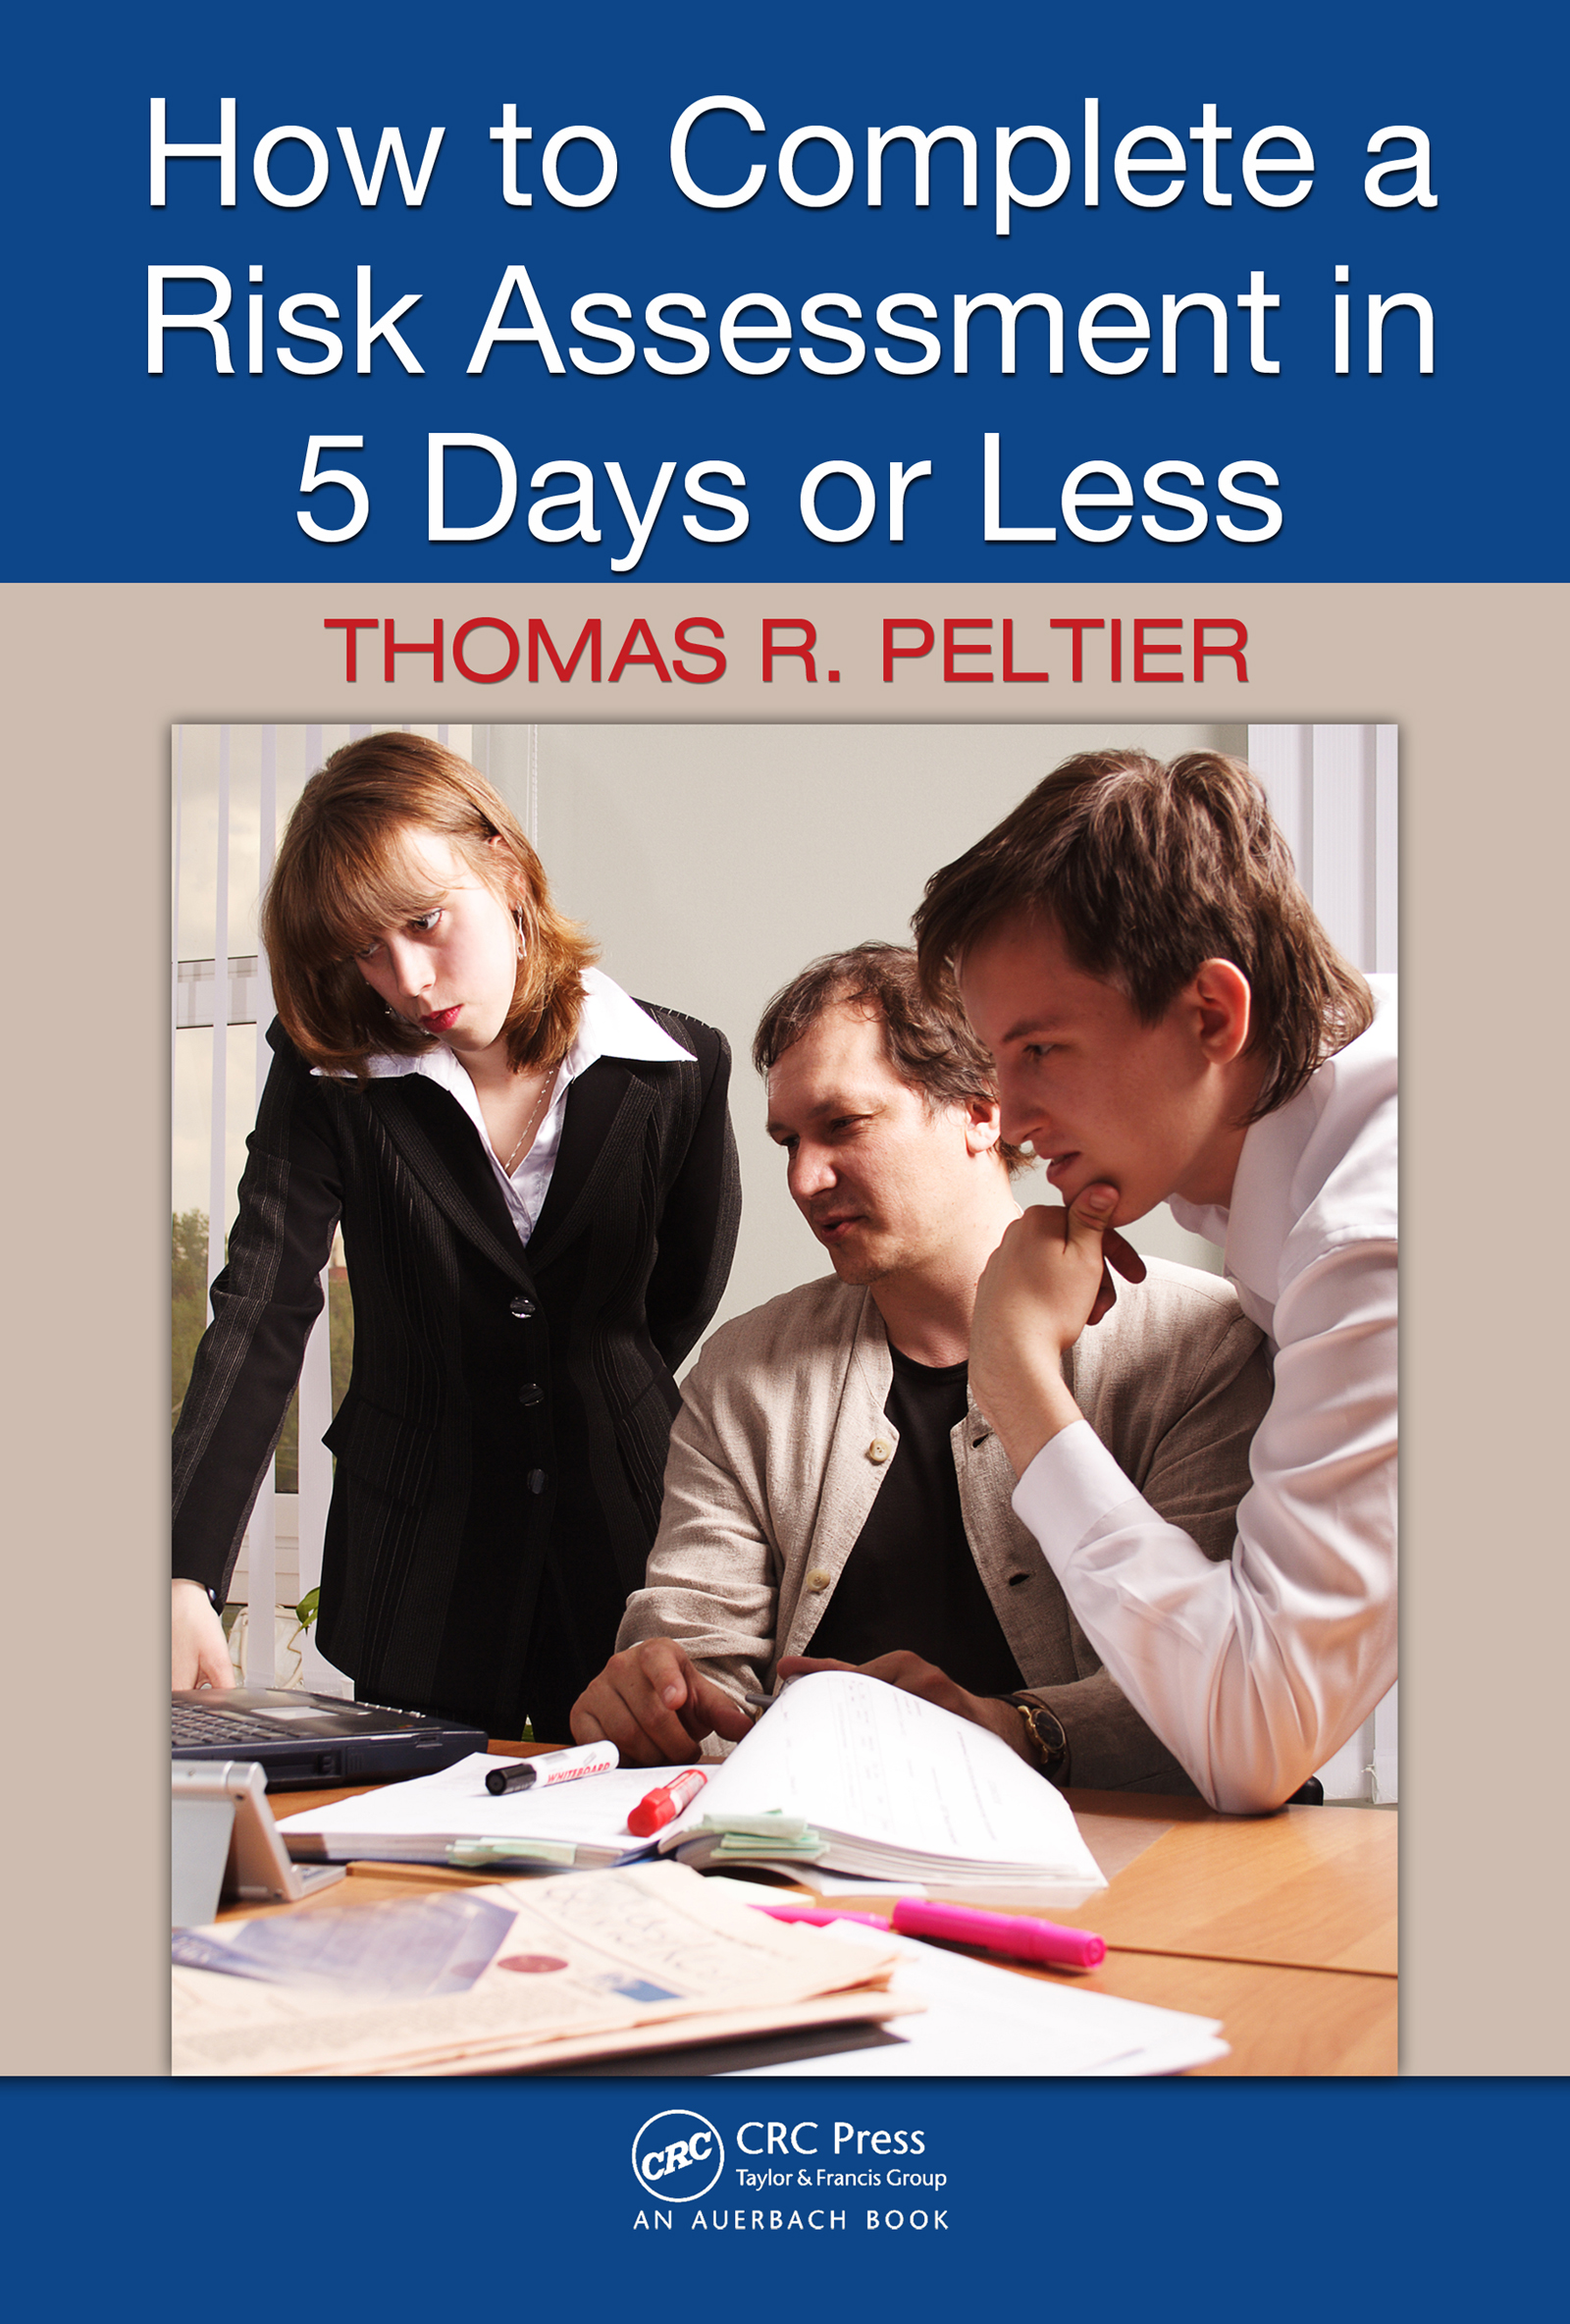 Download Ebook How to Complete a Risk Assessment in 5 Days or Less by Thomas R. Peltier Pdf